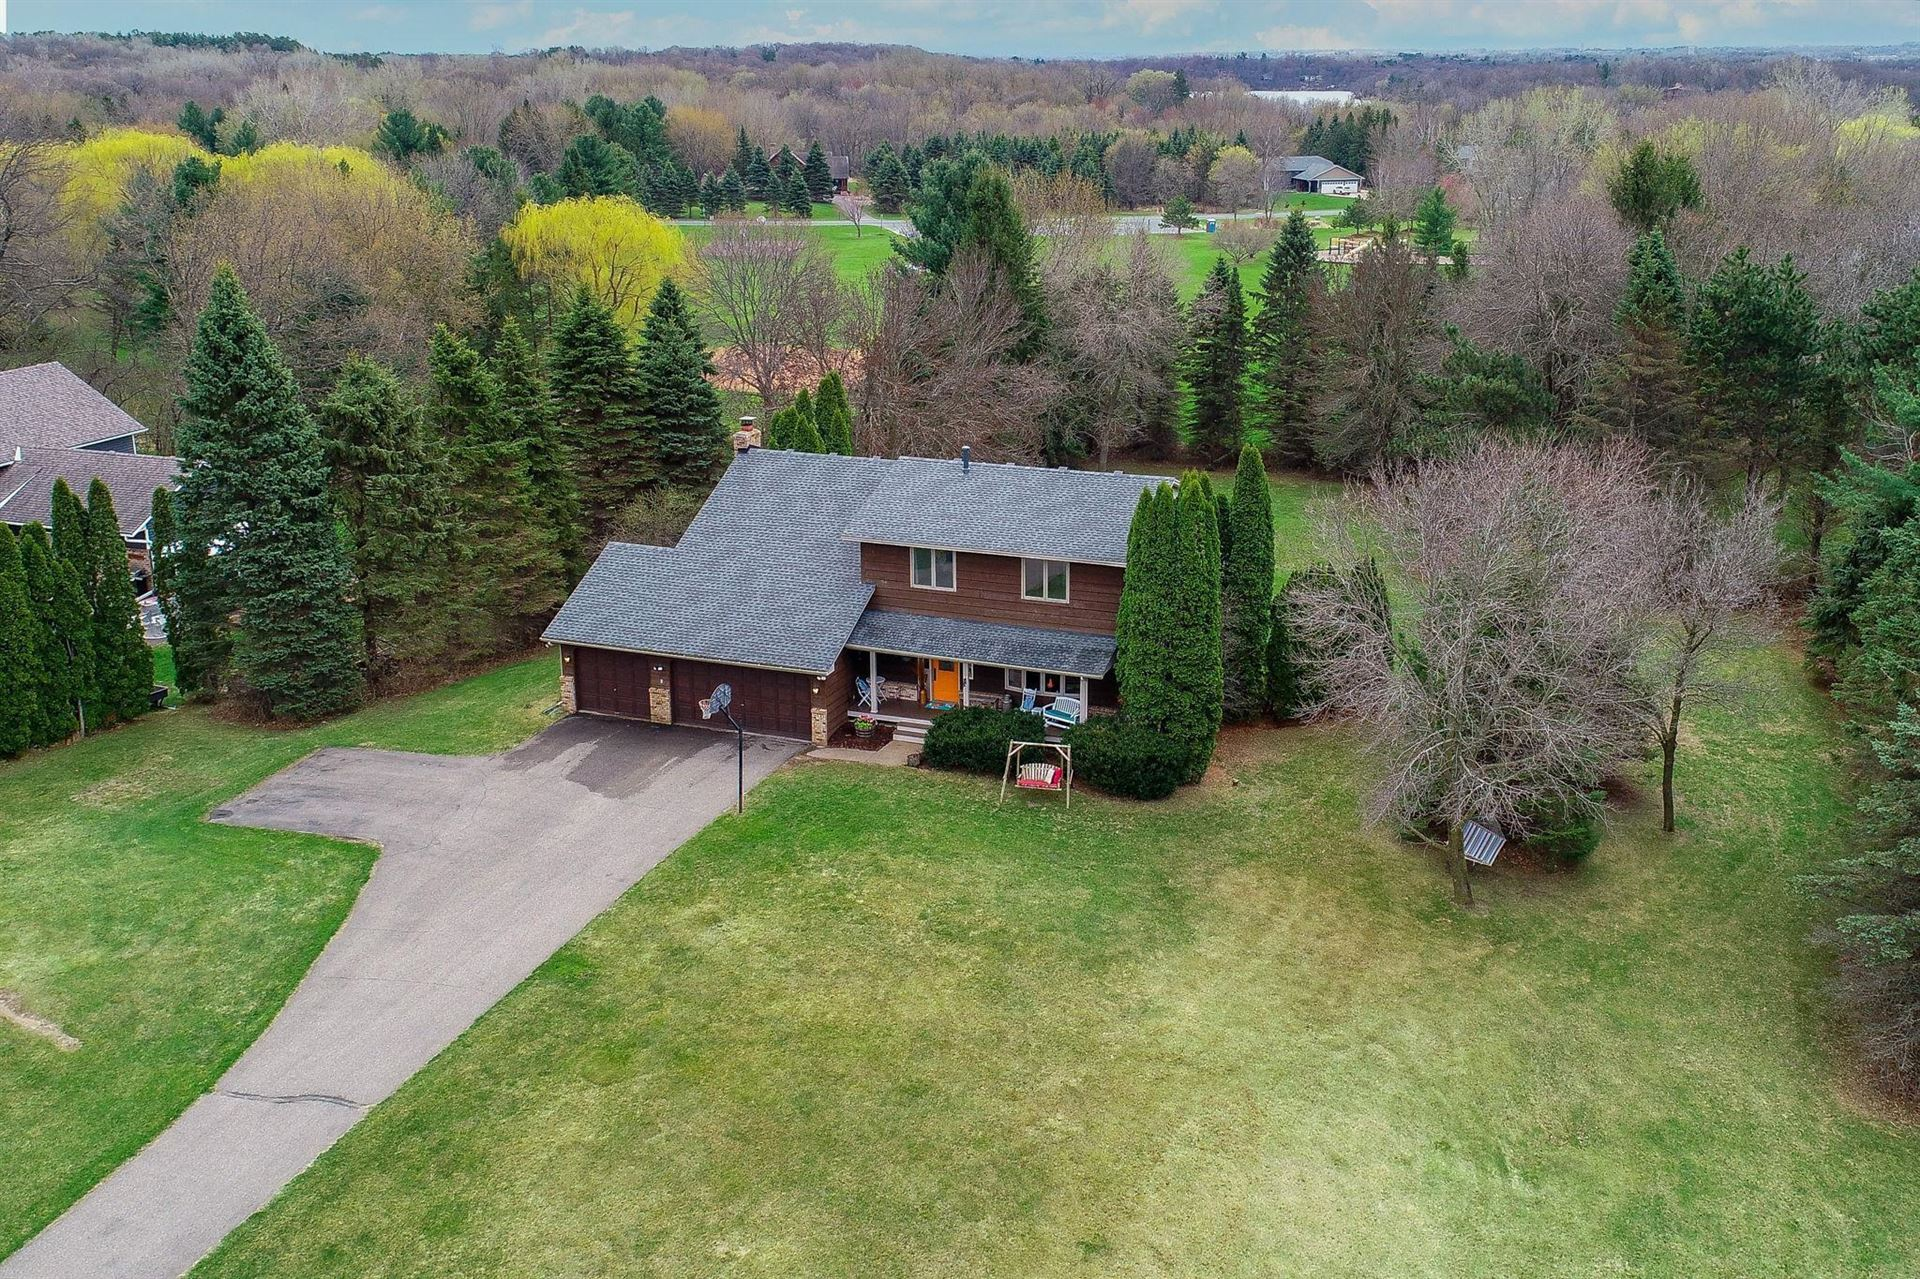 8021 59th Street N, Lake Elmo, MN 55042 - MLS#: 5740959